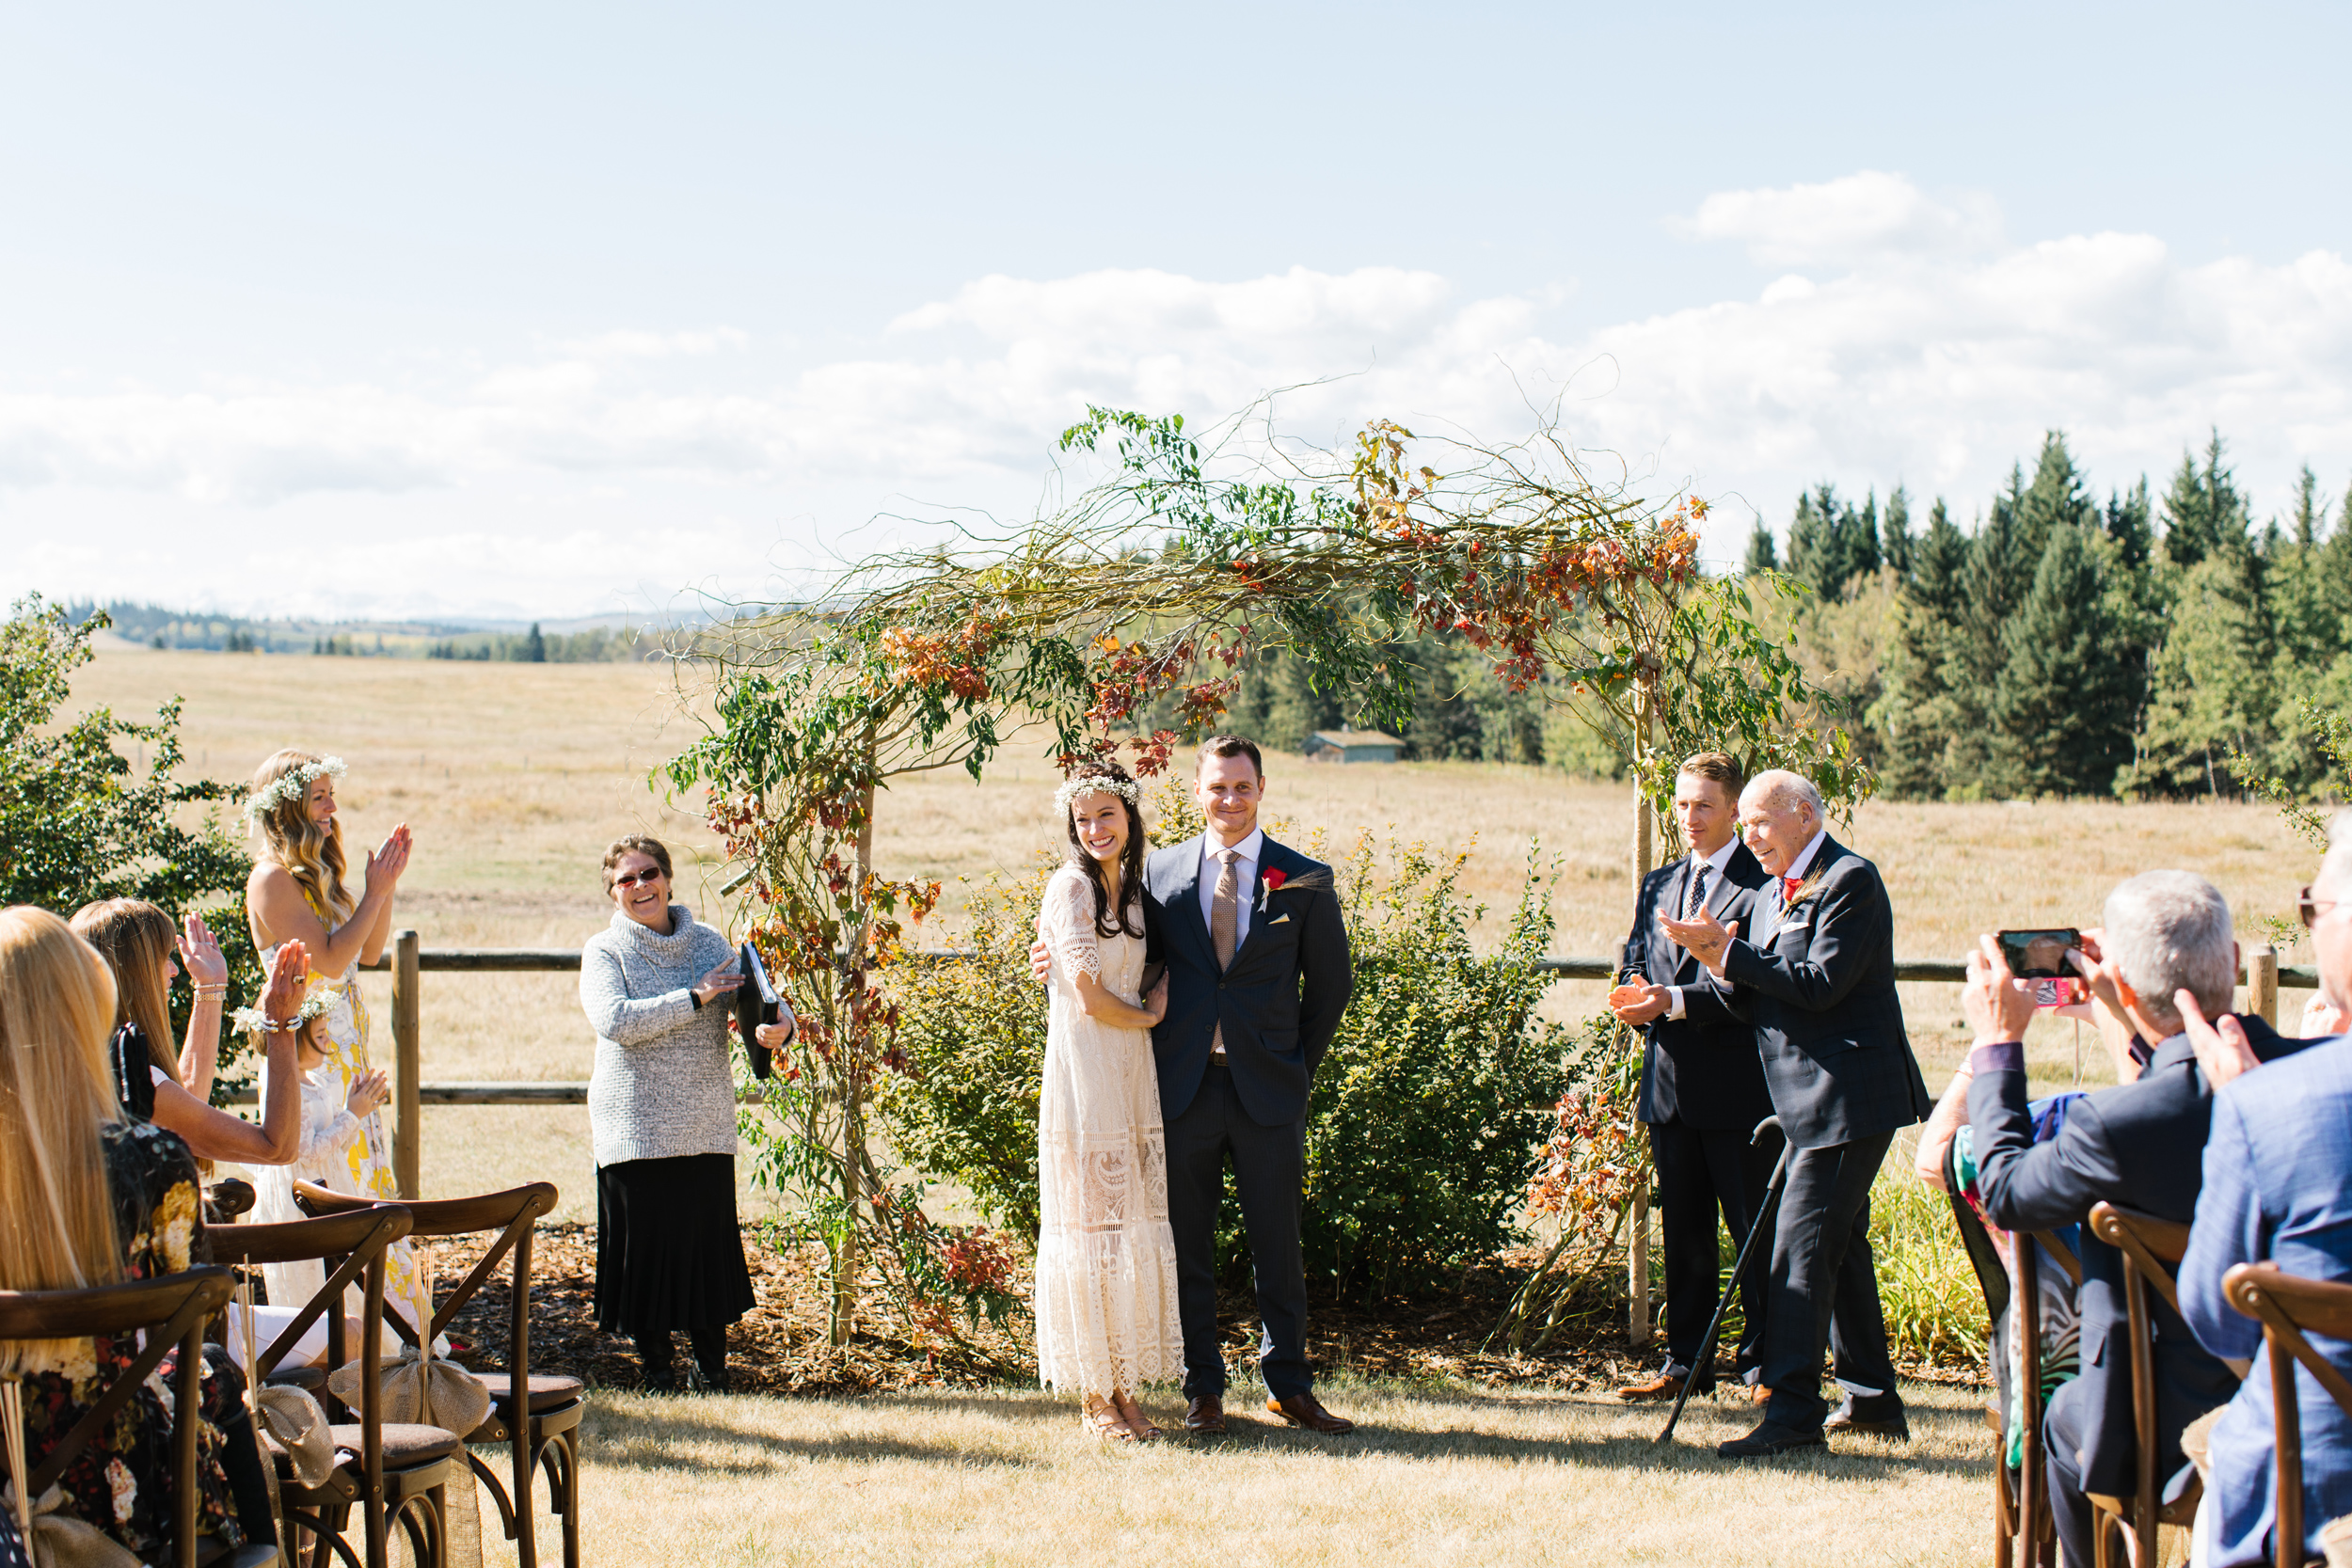 Calgary_Intimate_Backyard_Wedding0014.jpg